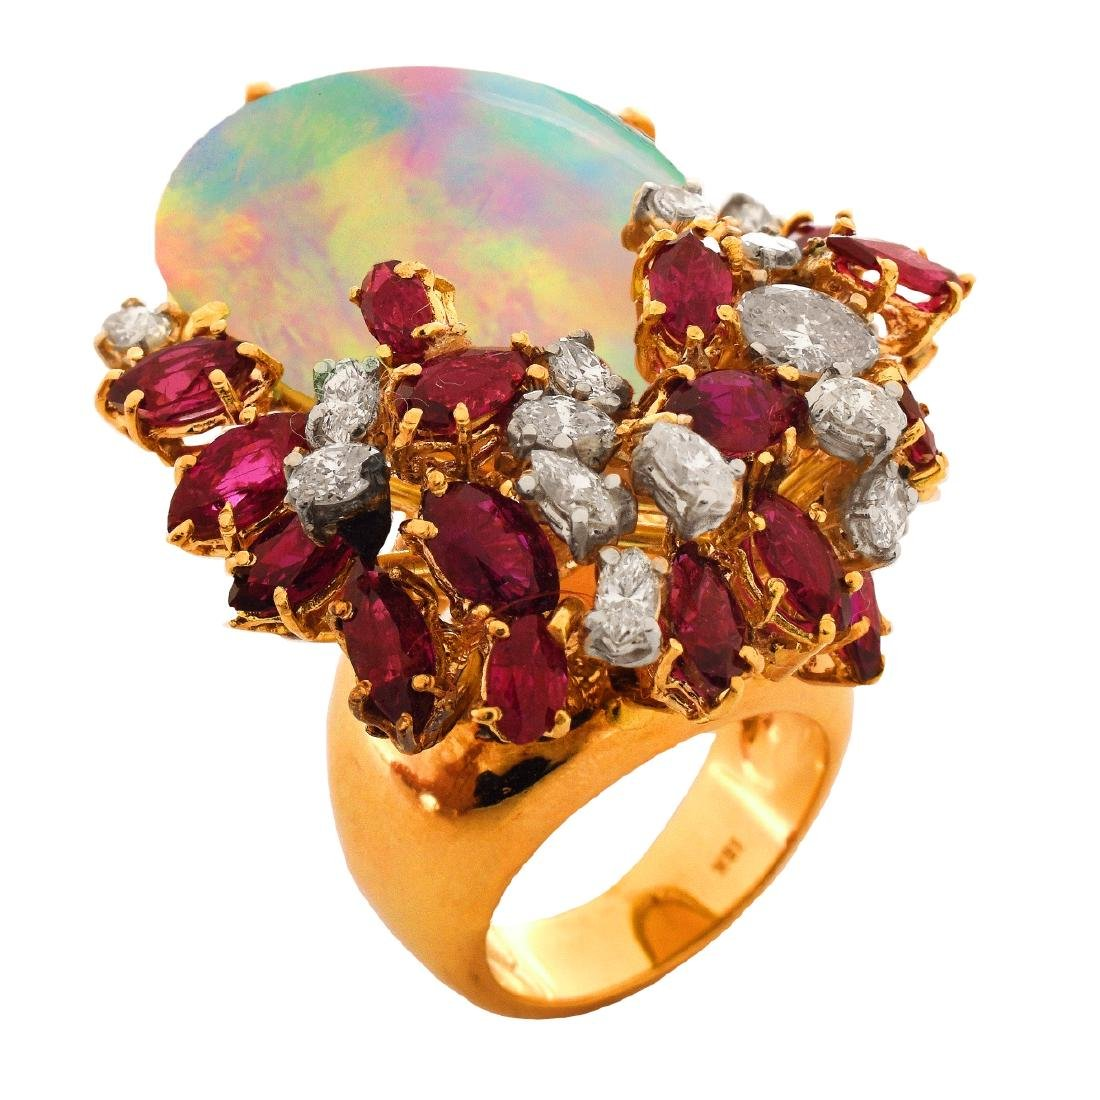 Vintage Opal, Ruby, Diamond and 18K Ring